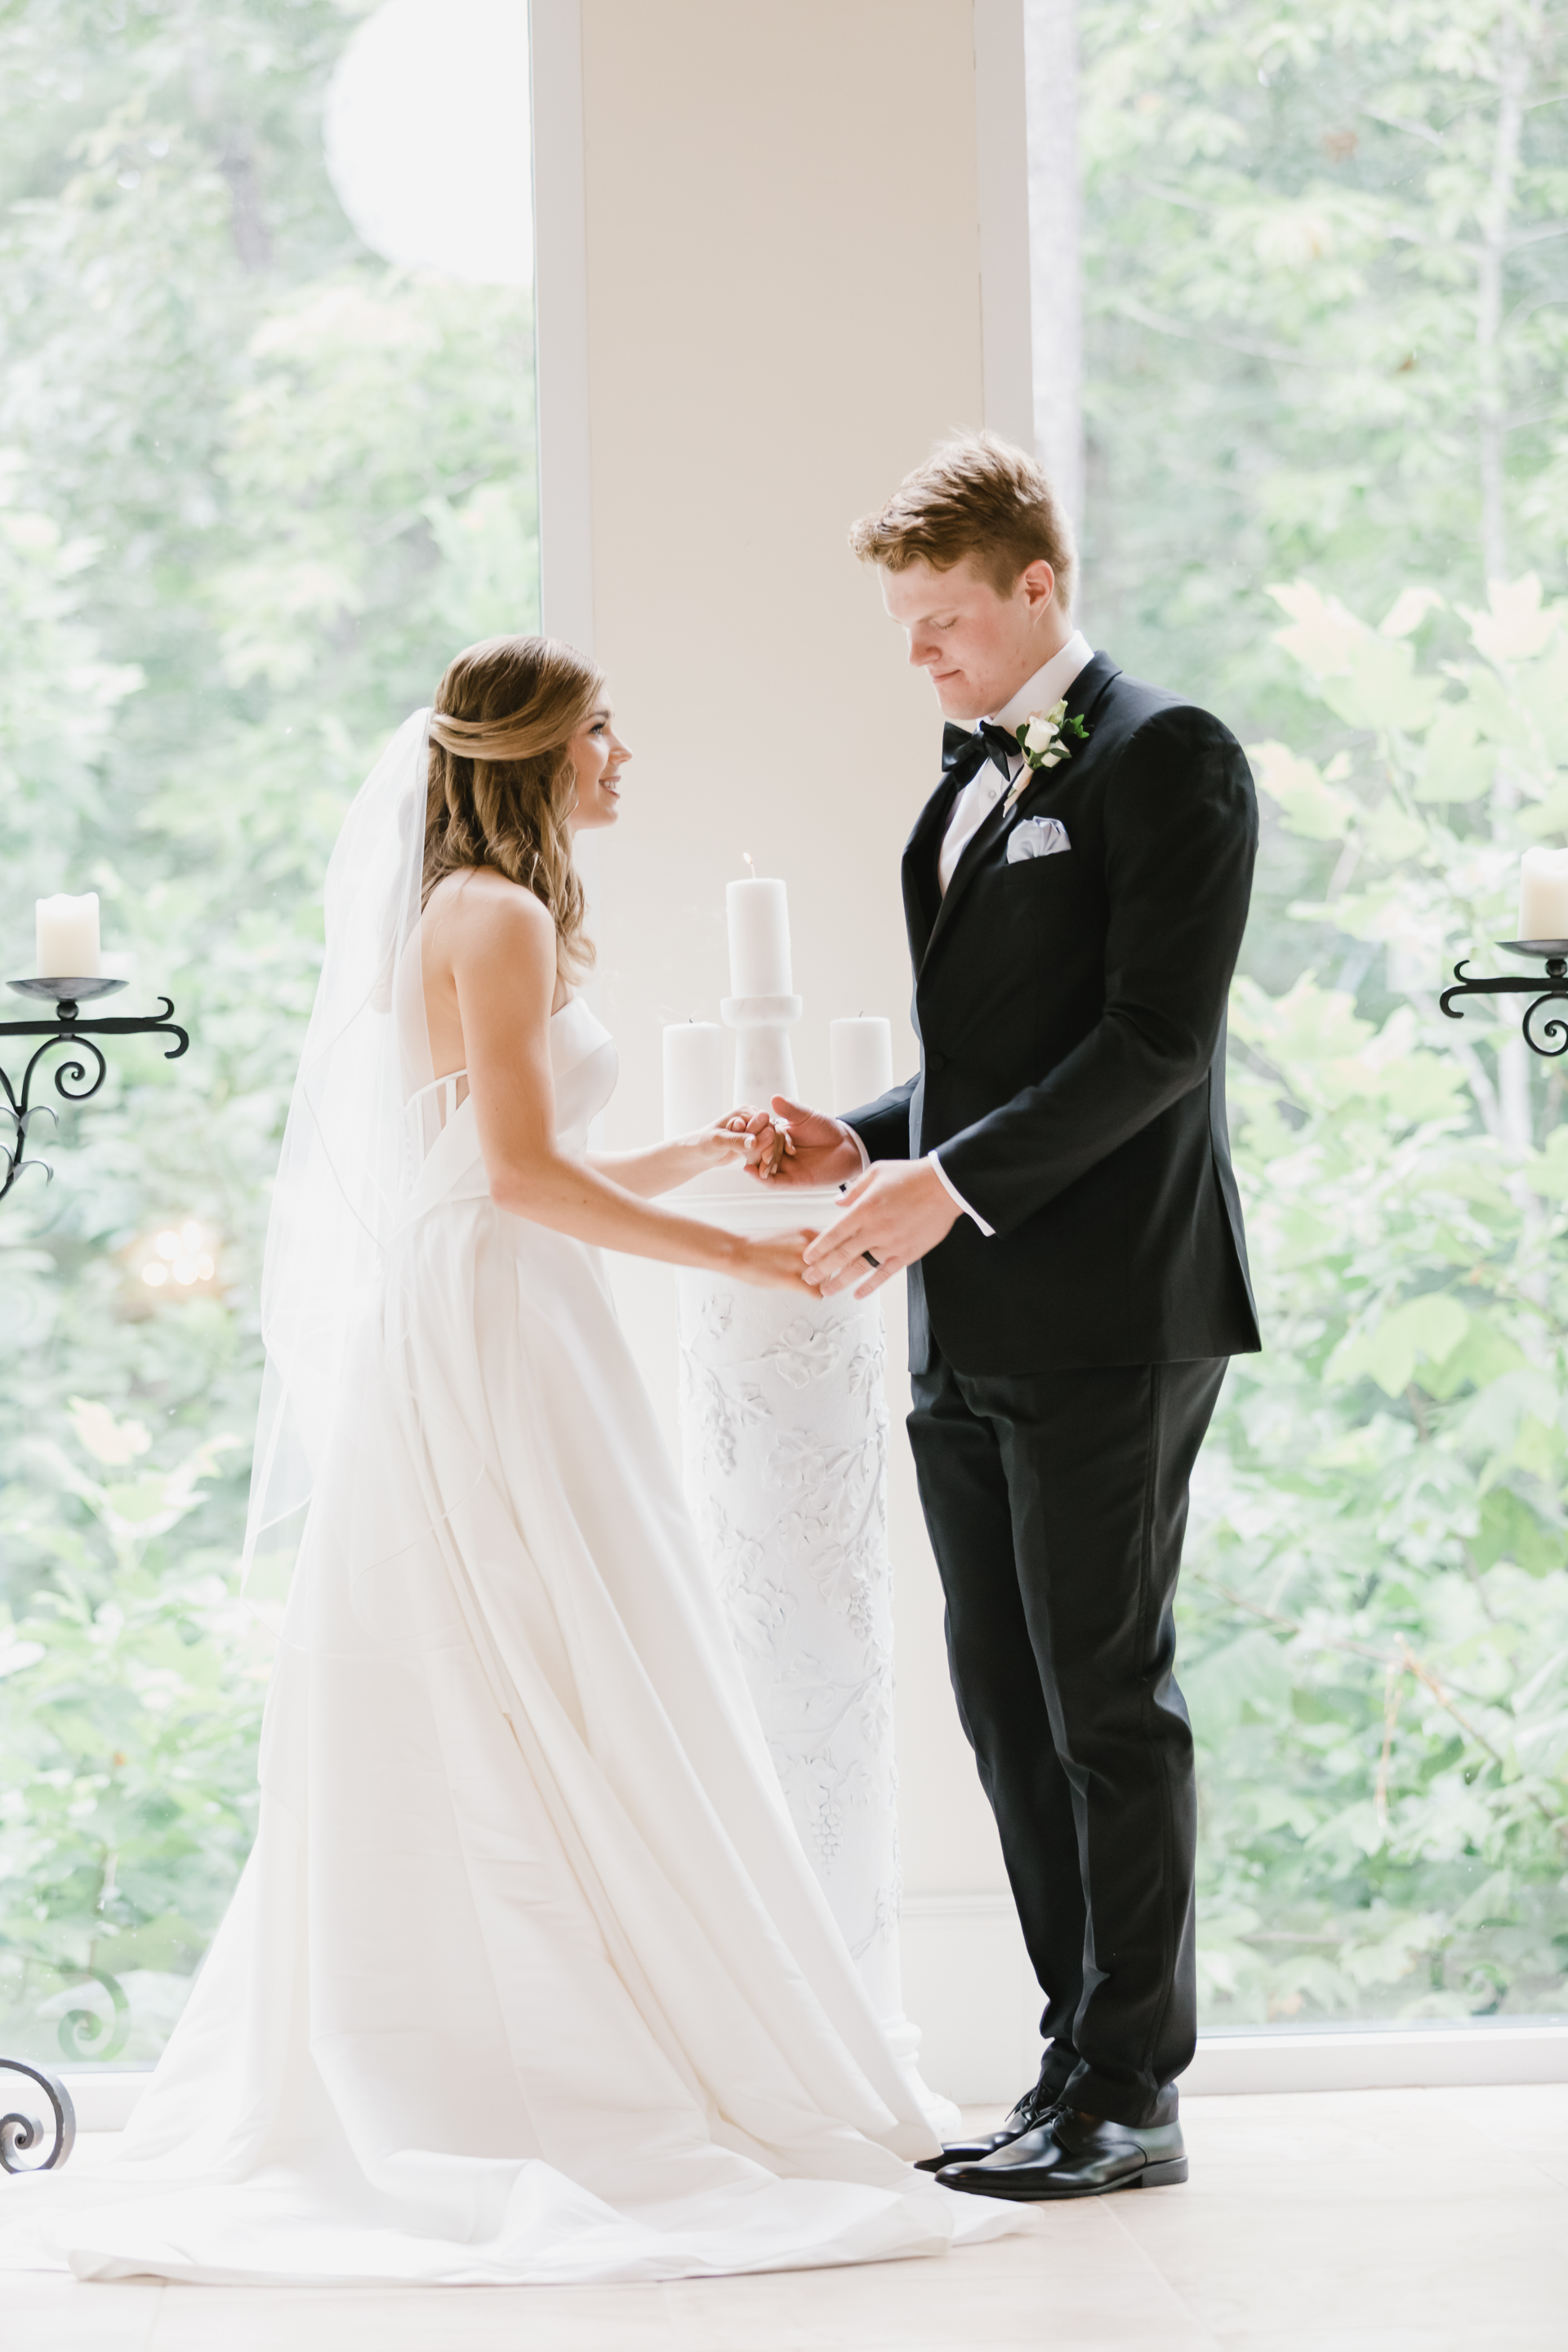 Gianna Keiko Atlanta NYC California Wedding Photographer_sneak peek-37.jpg